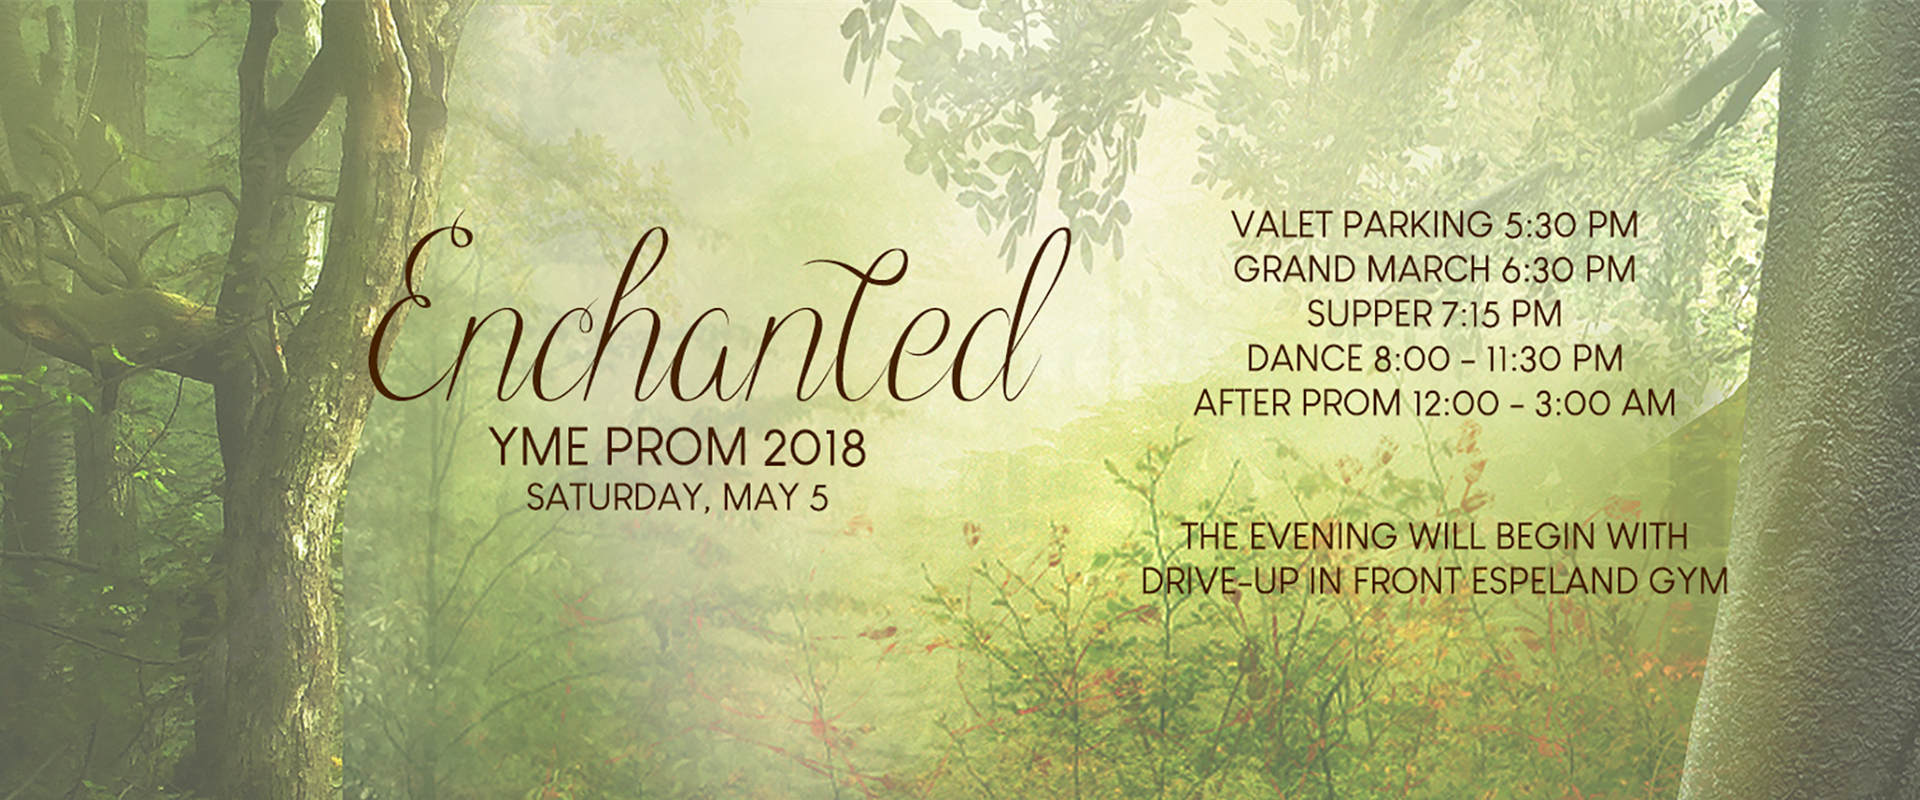 YME Prom 2018- Enchanted will be held on Saturday, May 5th. Drive up will begin at 5:30pm in front of Espeland Gymnasium.